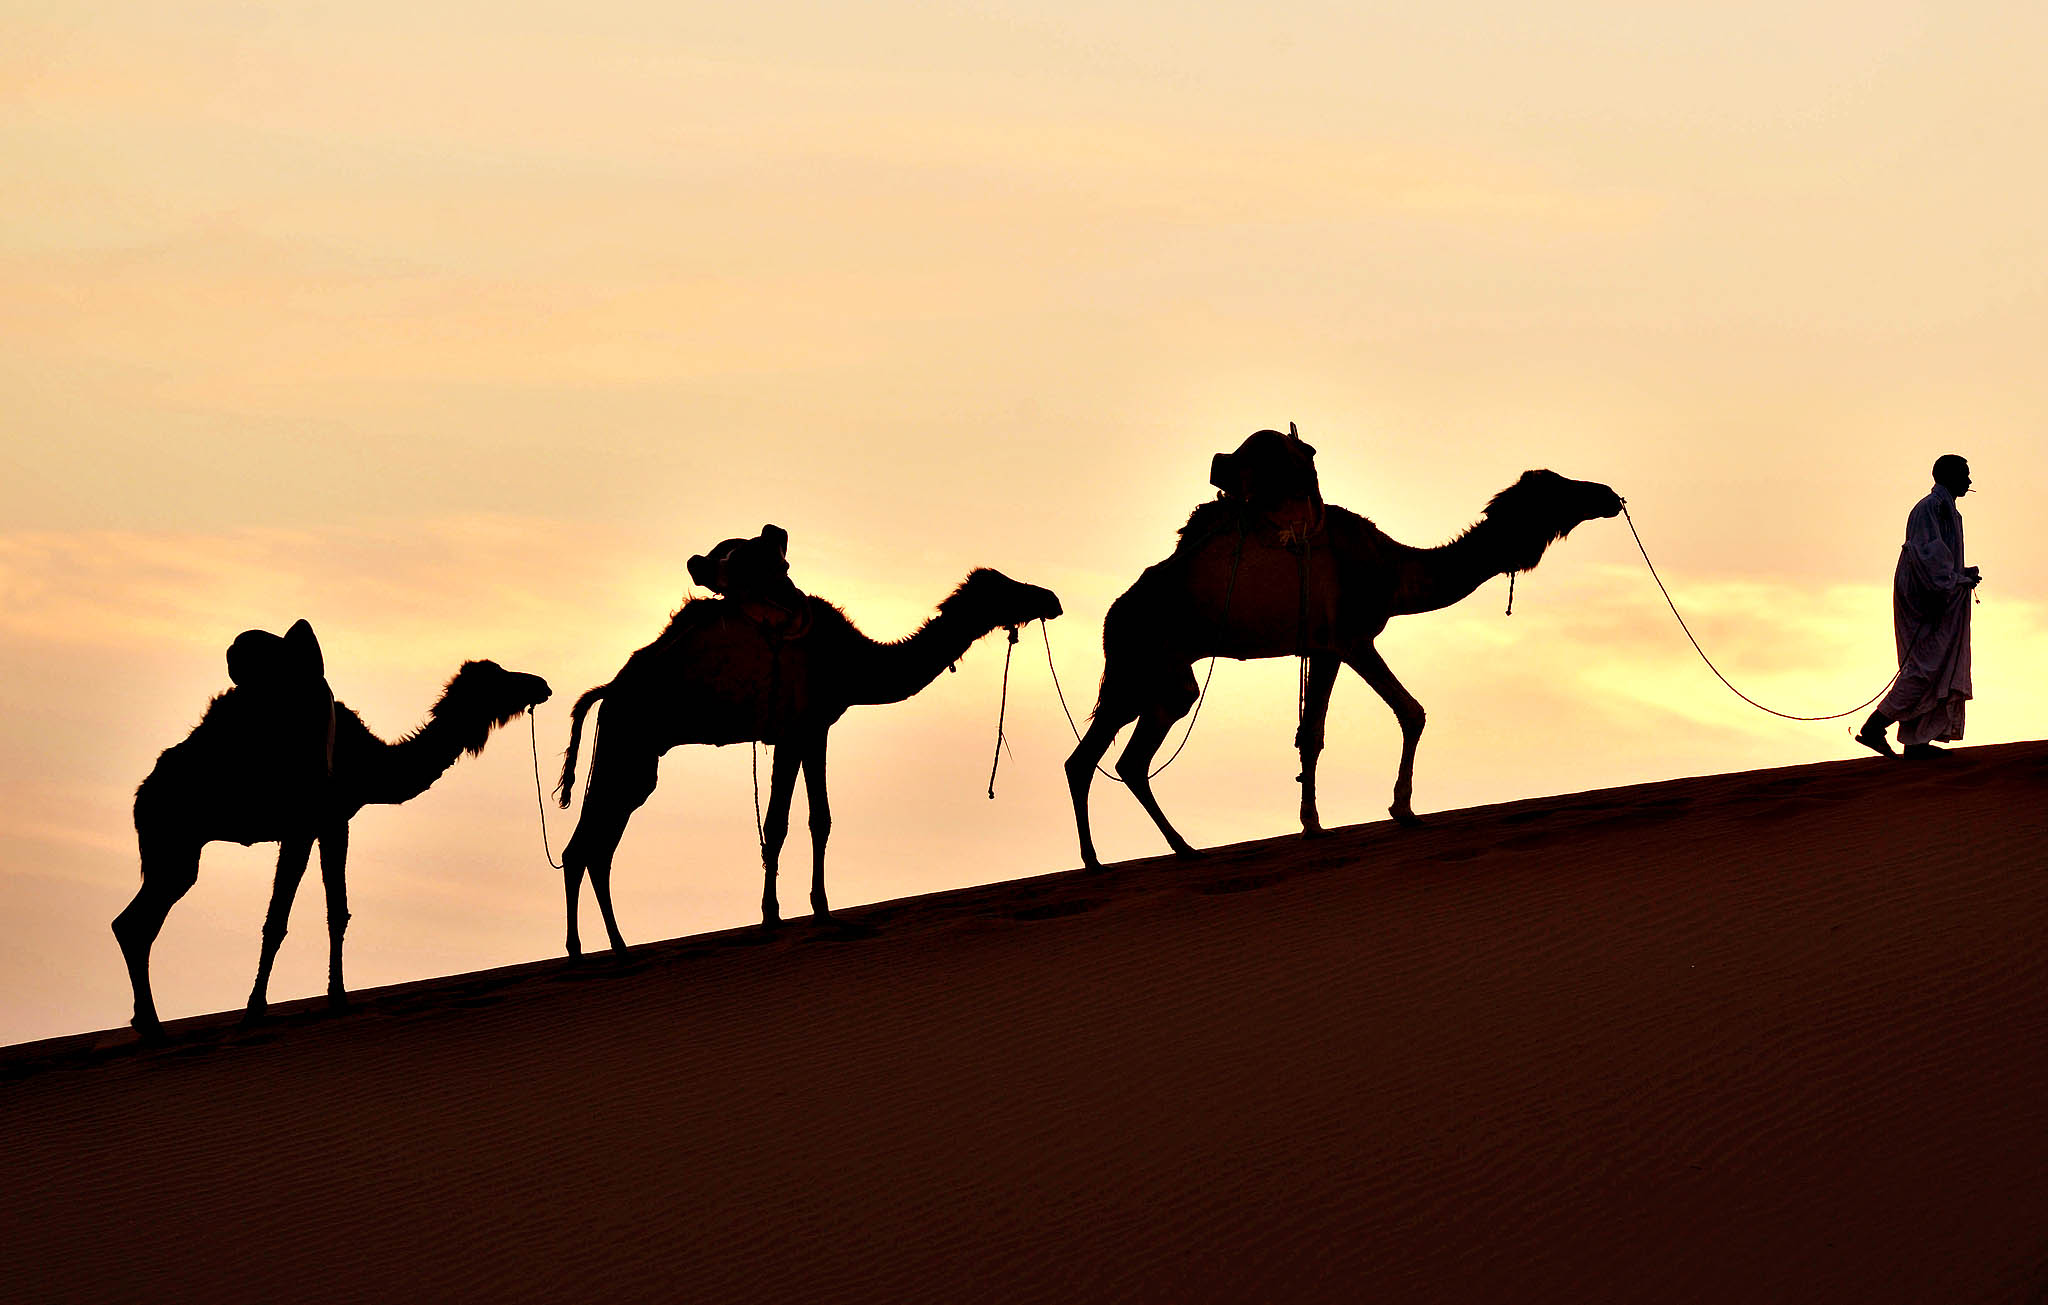 A man walks on a sand dune with his camels in Mhamid el-Ghizlane, in the Moroccan southern Sahara desert.